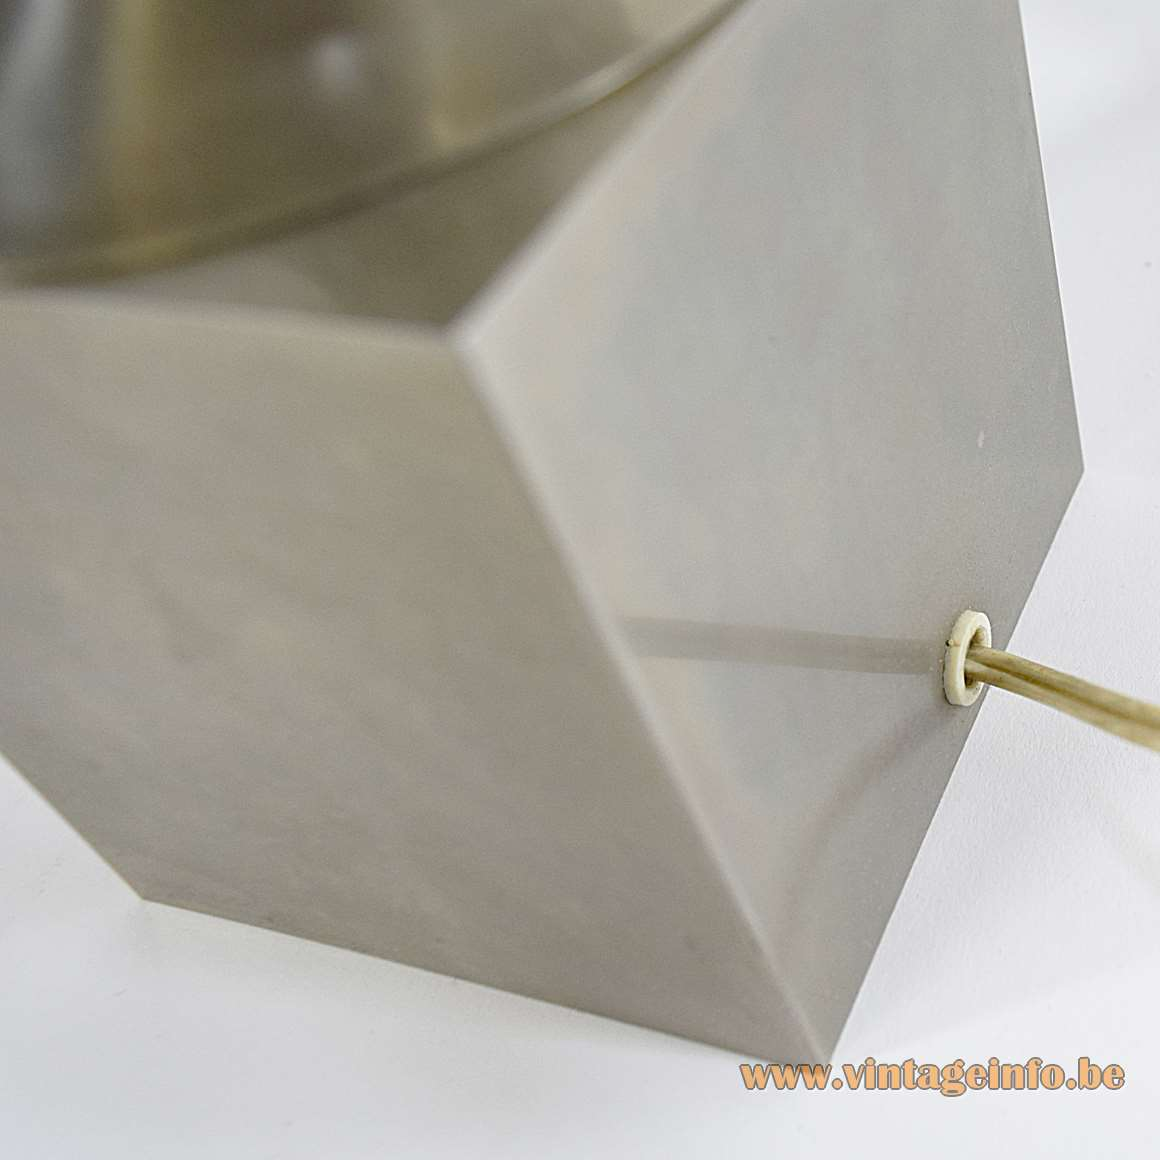 Nickel-plated modernist table lamp geometric square base Saturn disc round lampshade 1960s 1970s Italy